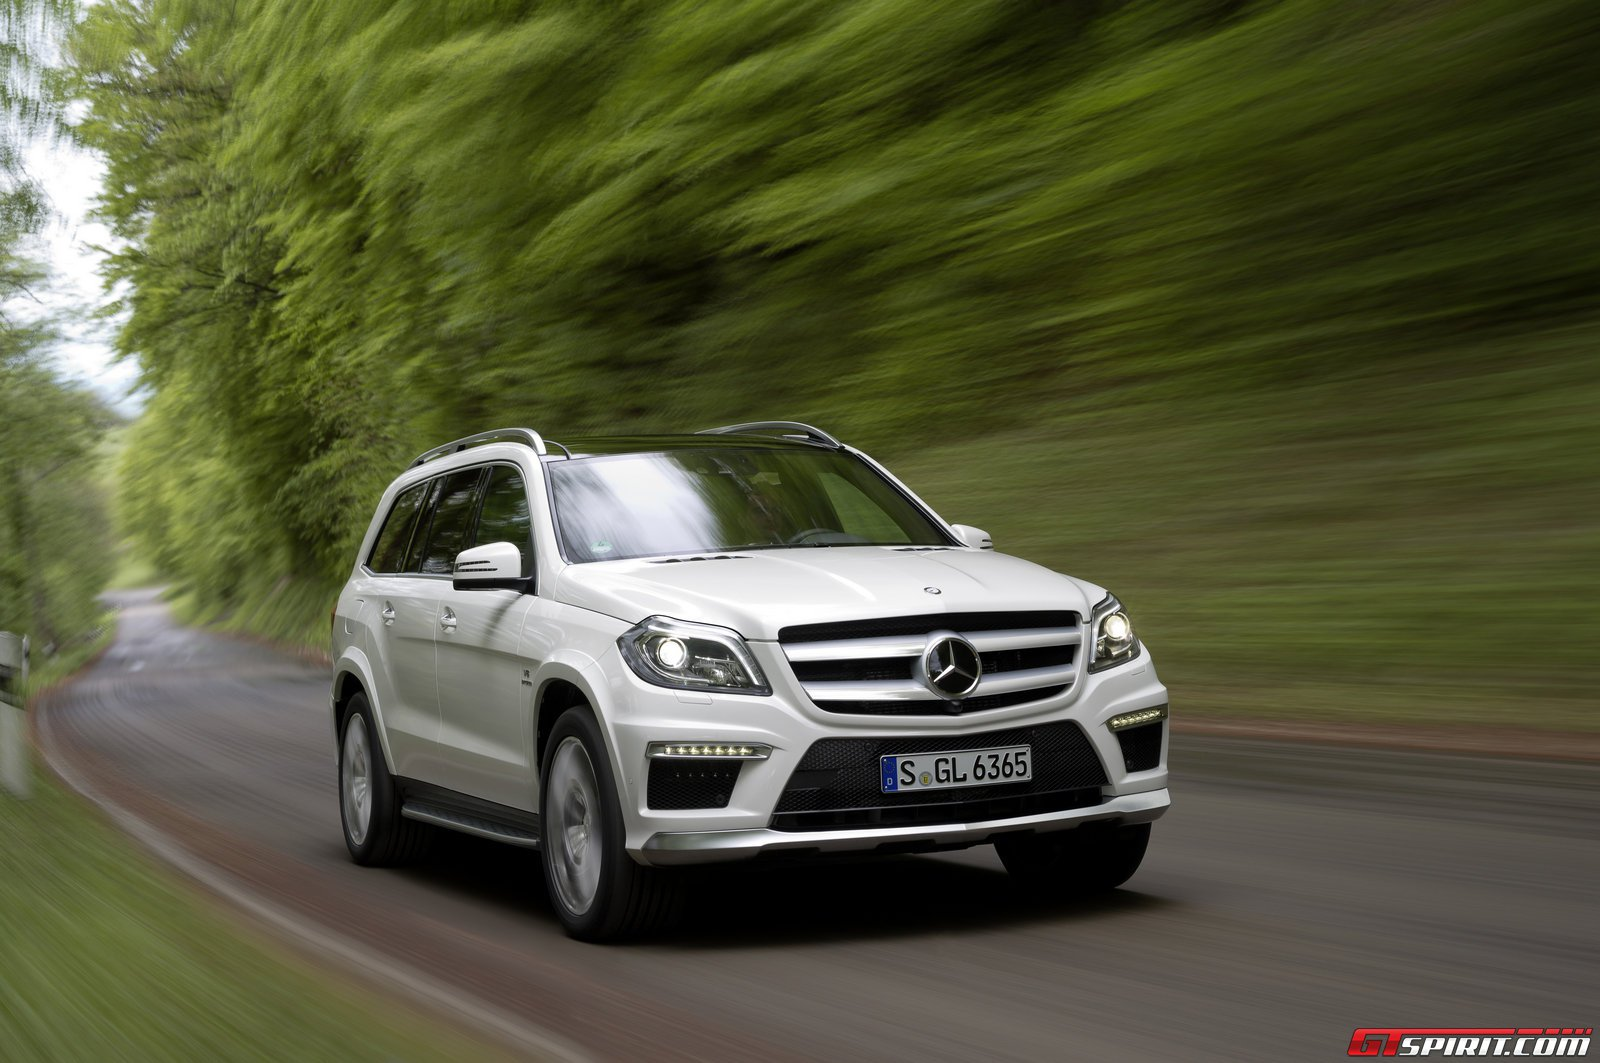 2014 mercedes benz gl 63 amg review gtspirit for Mercedes benz gl450 reviews